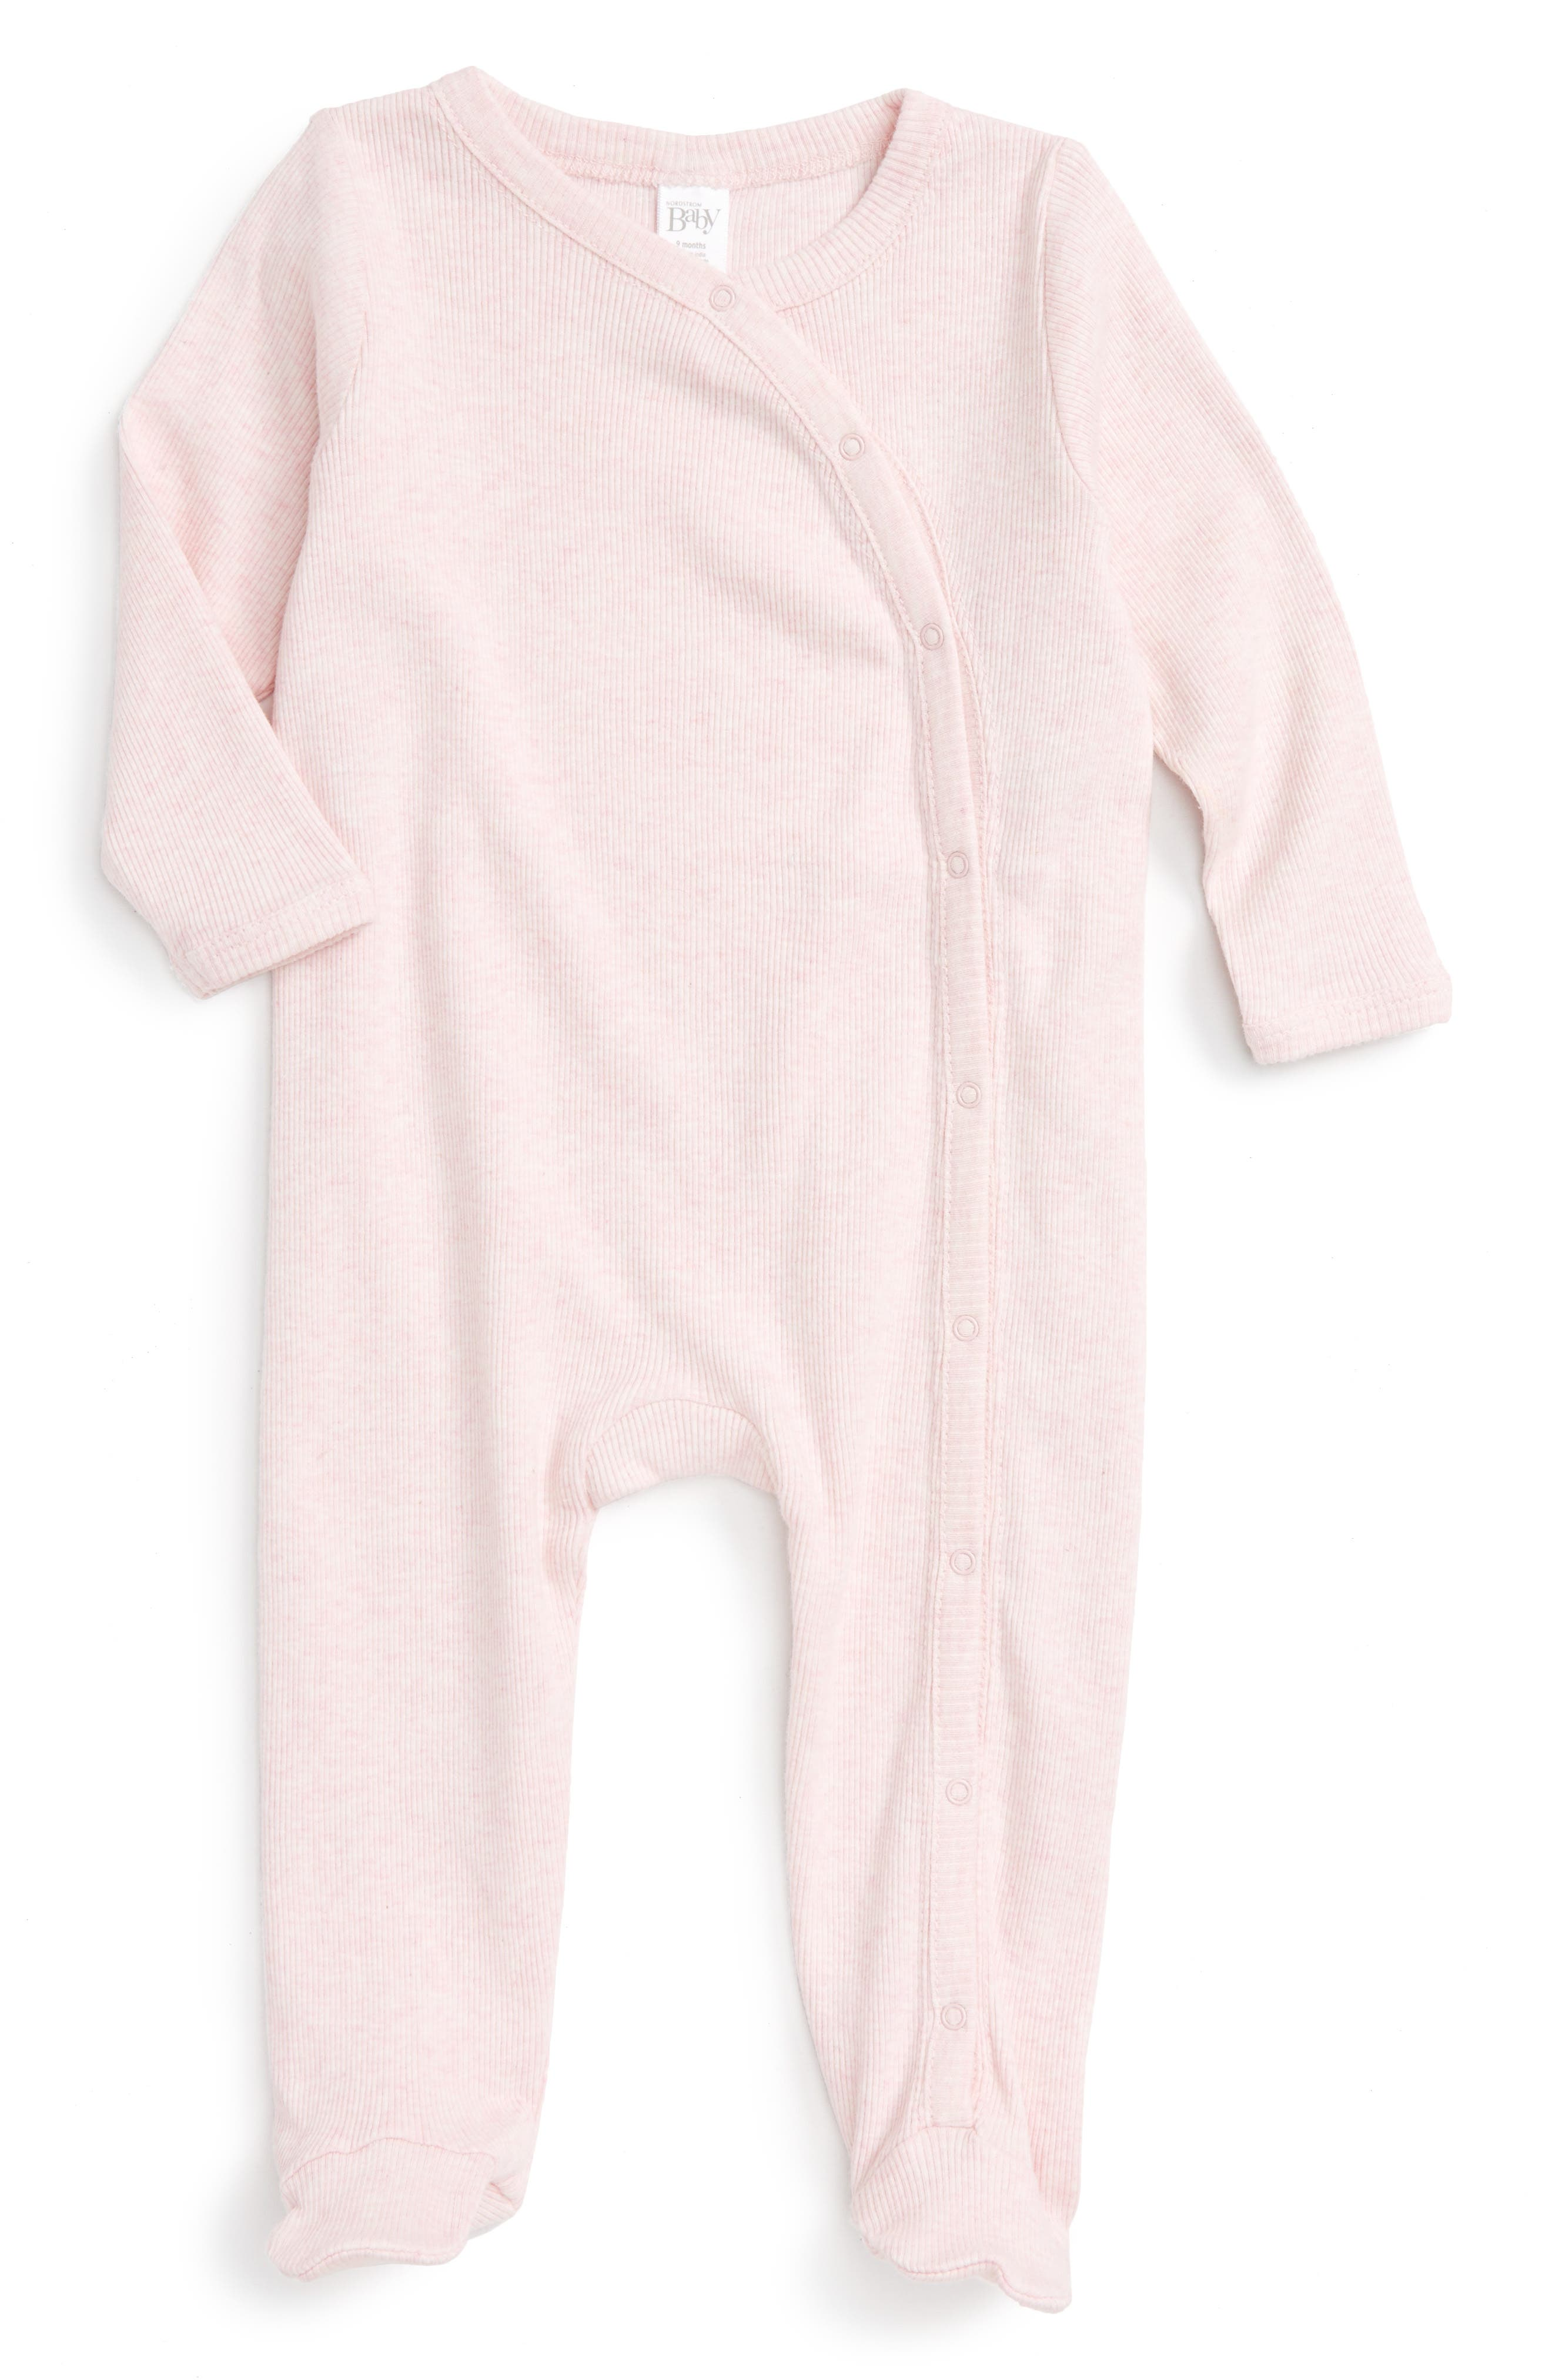 NORDSTROM BABY Rib Knit Footie, Main, color, PINK BABY HEATHER